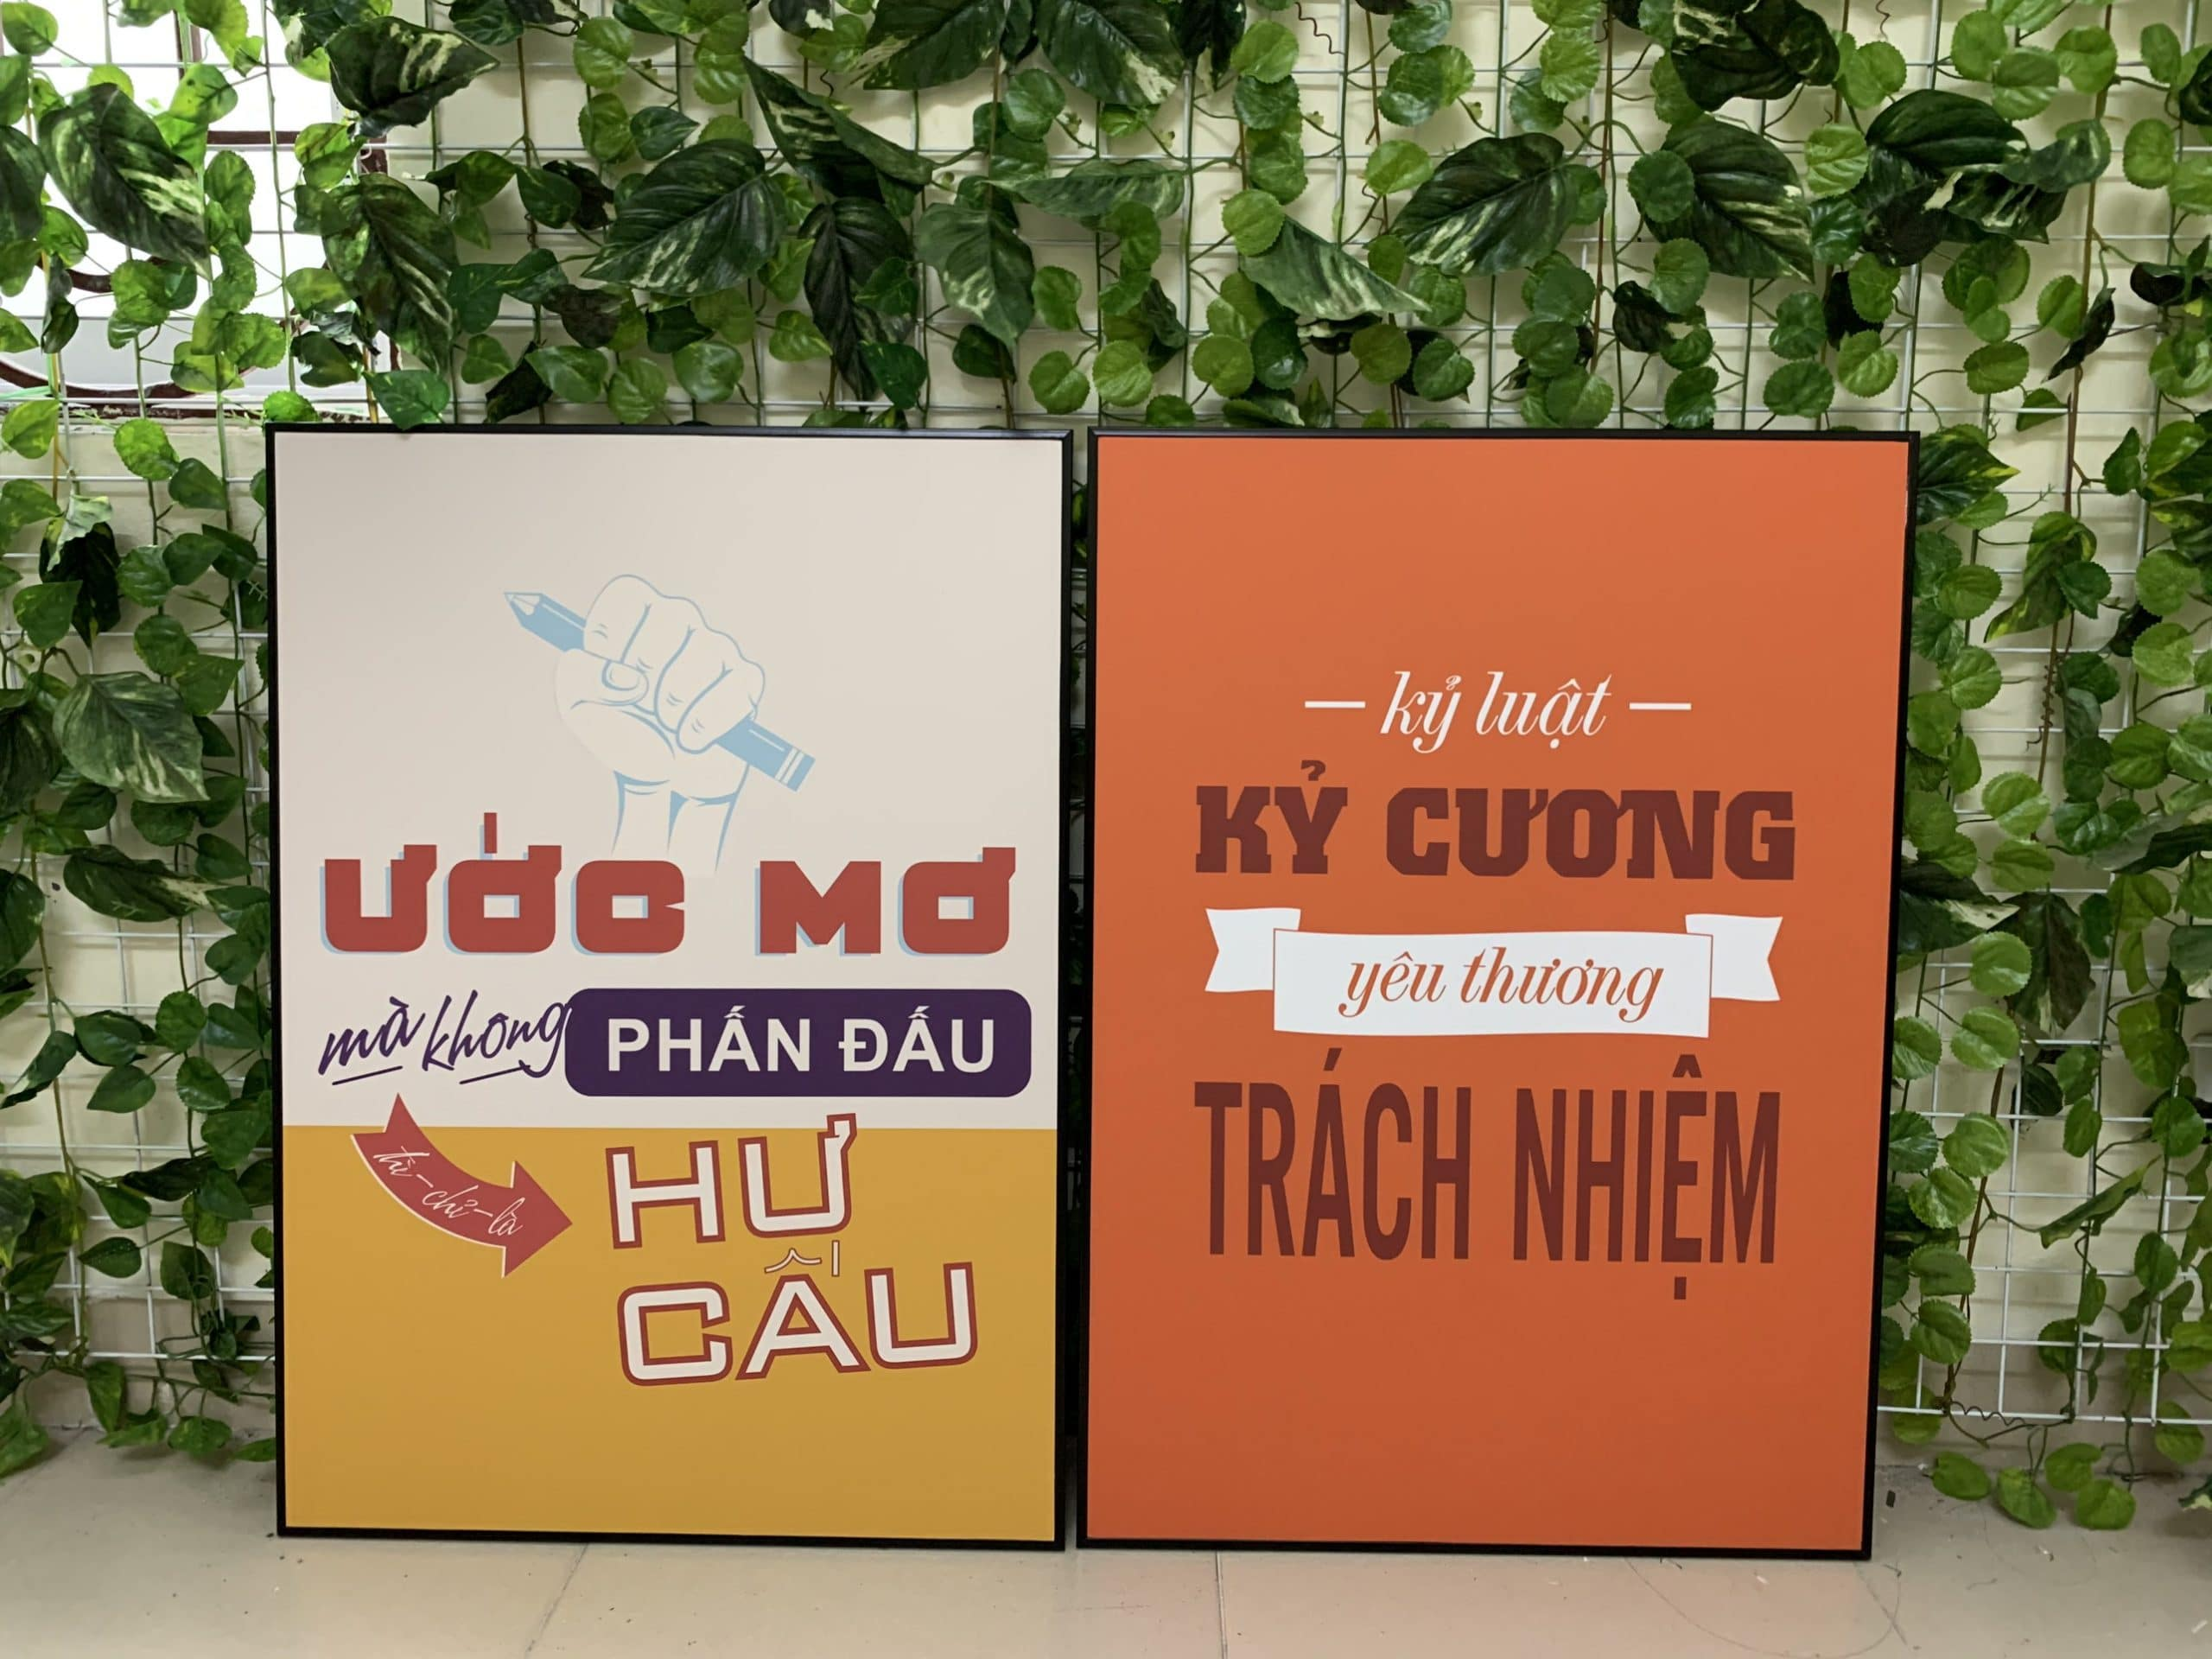 Image #1 from thảo